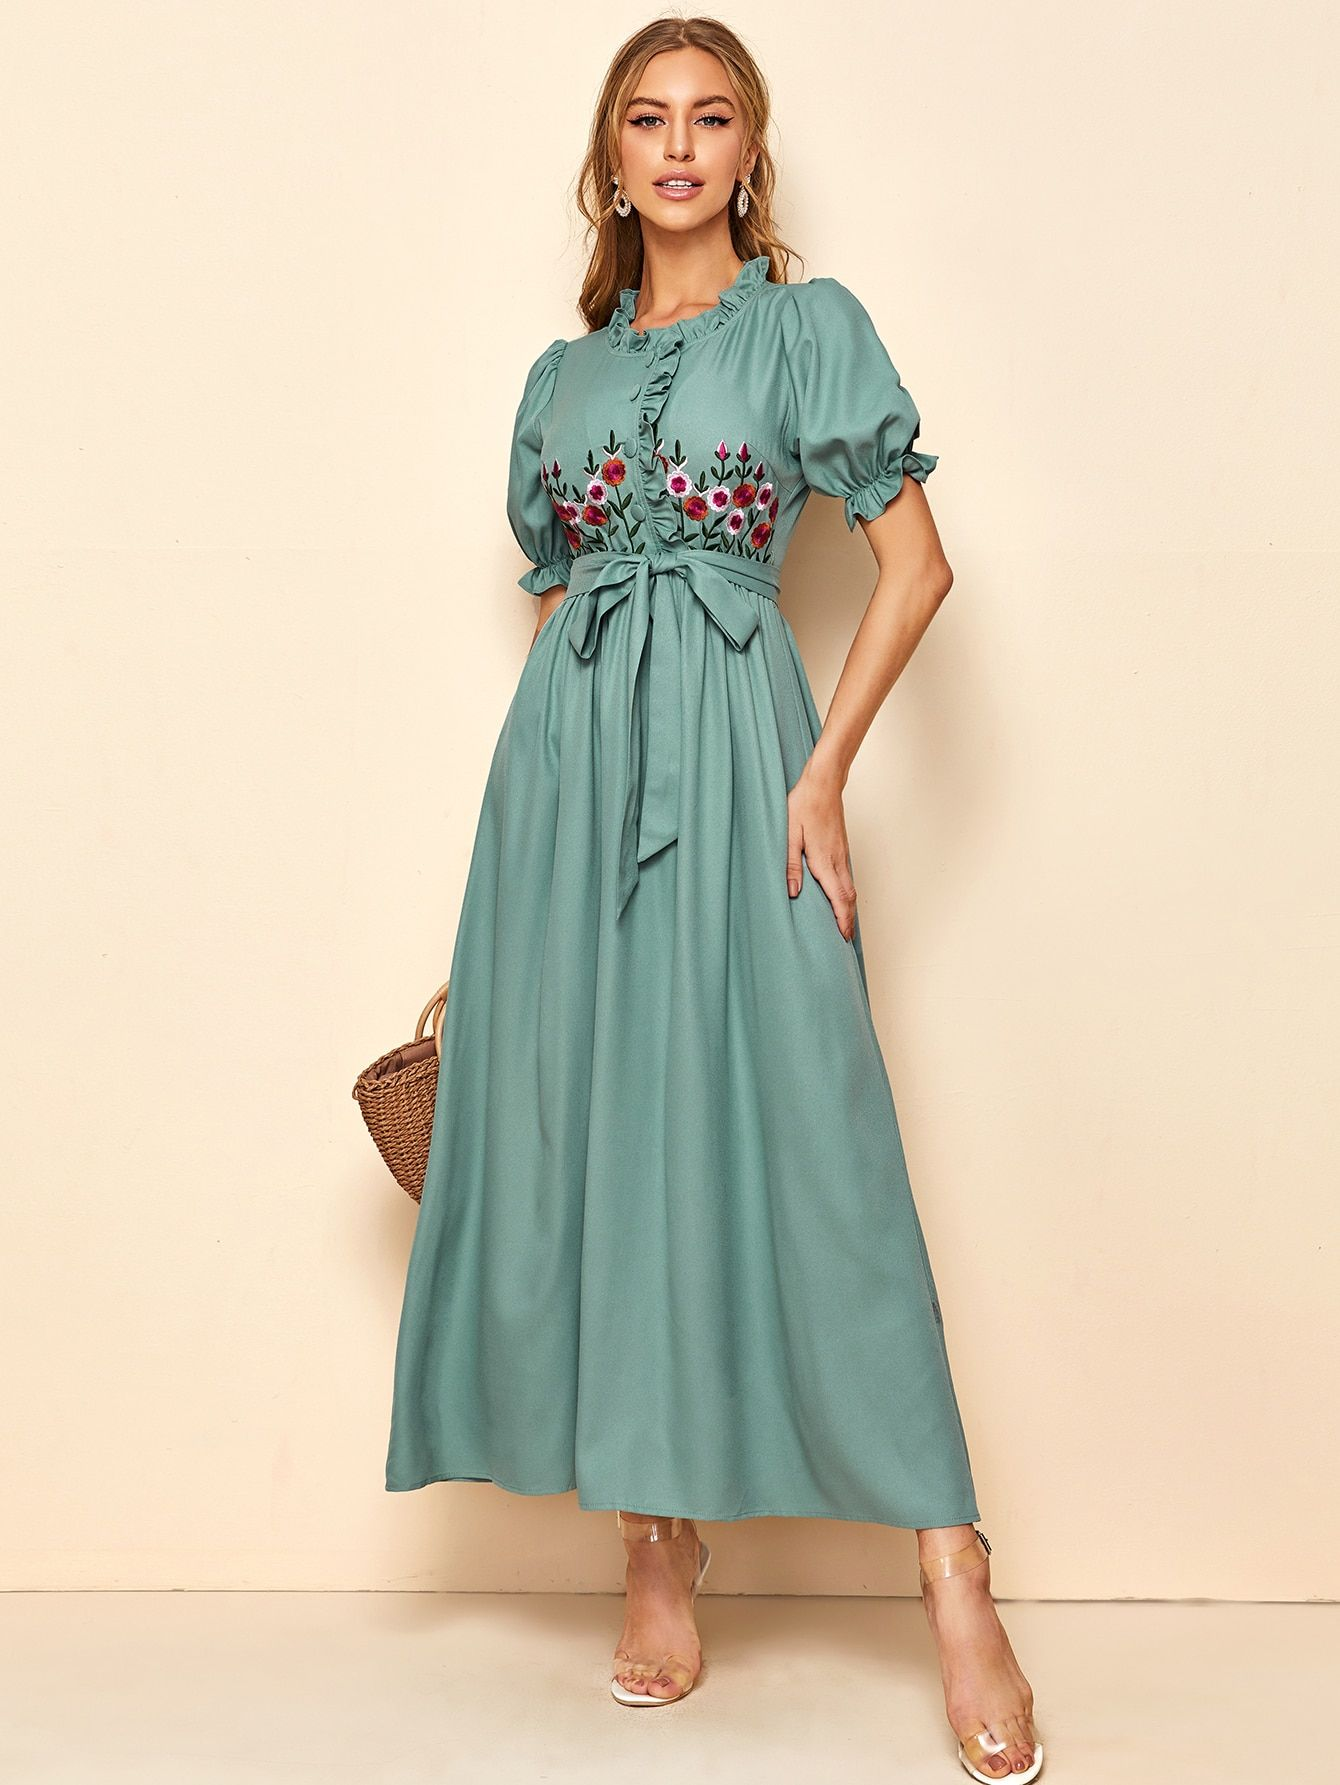 Embroidered floral frill trim button front self belted